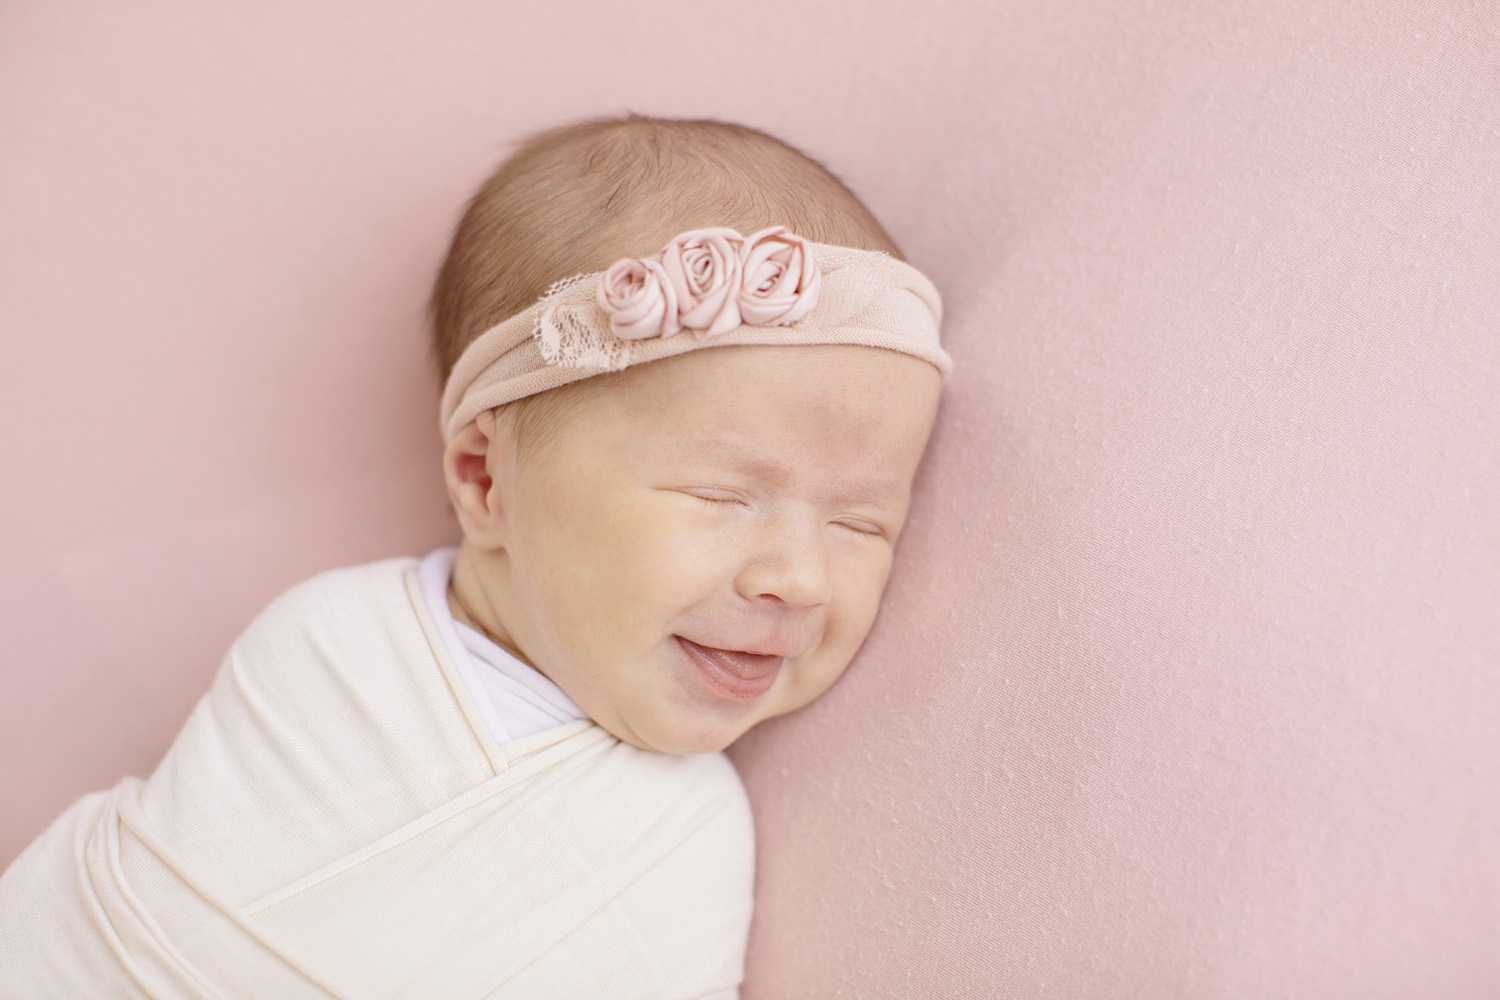 swetman-photography-smiling-newborn.jpg